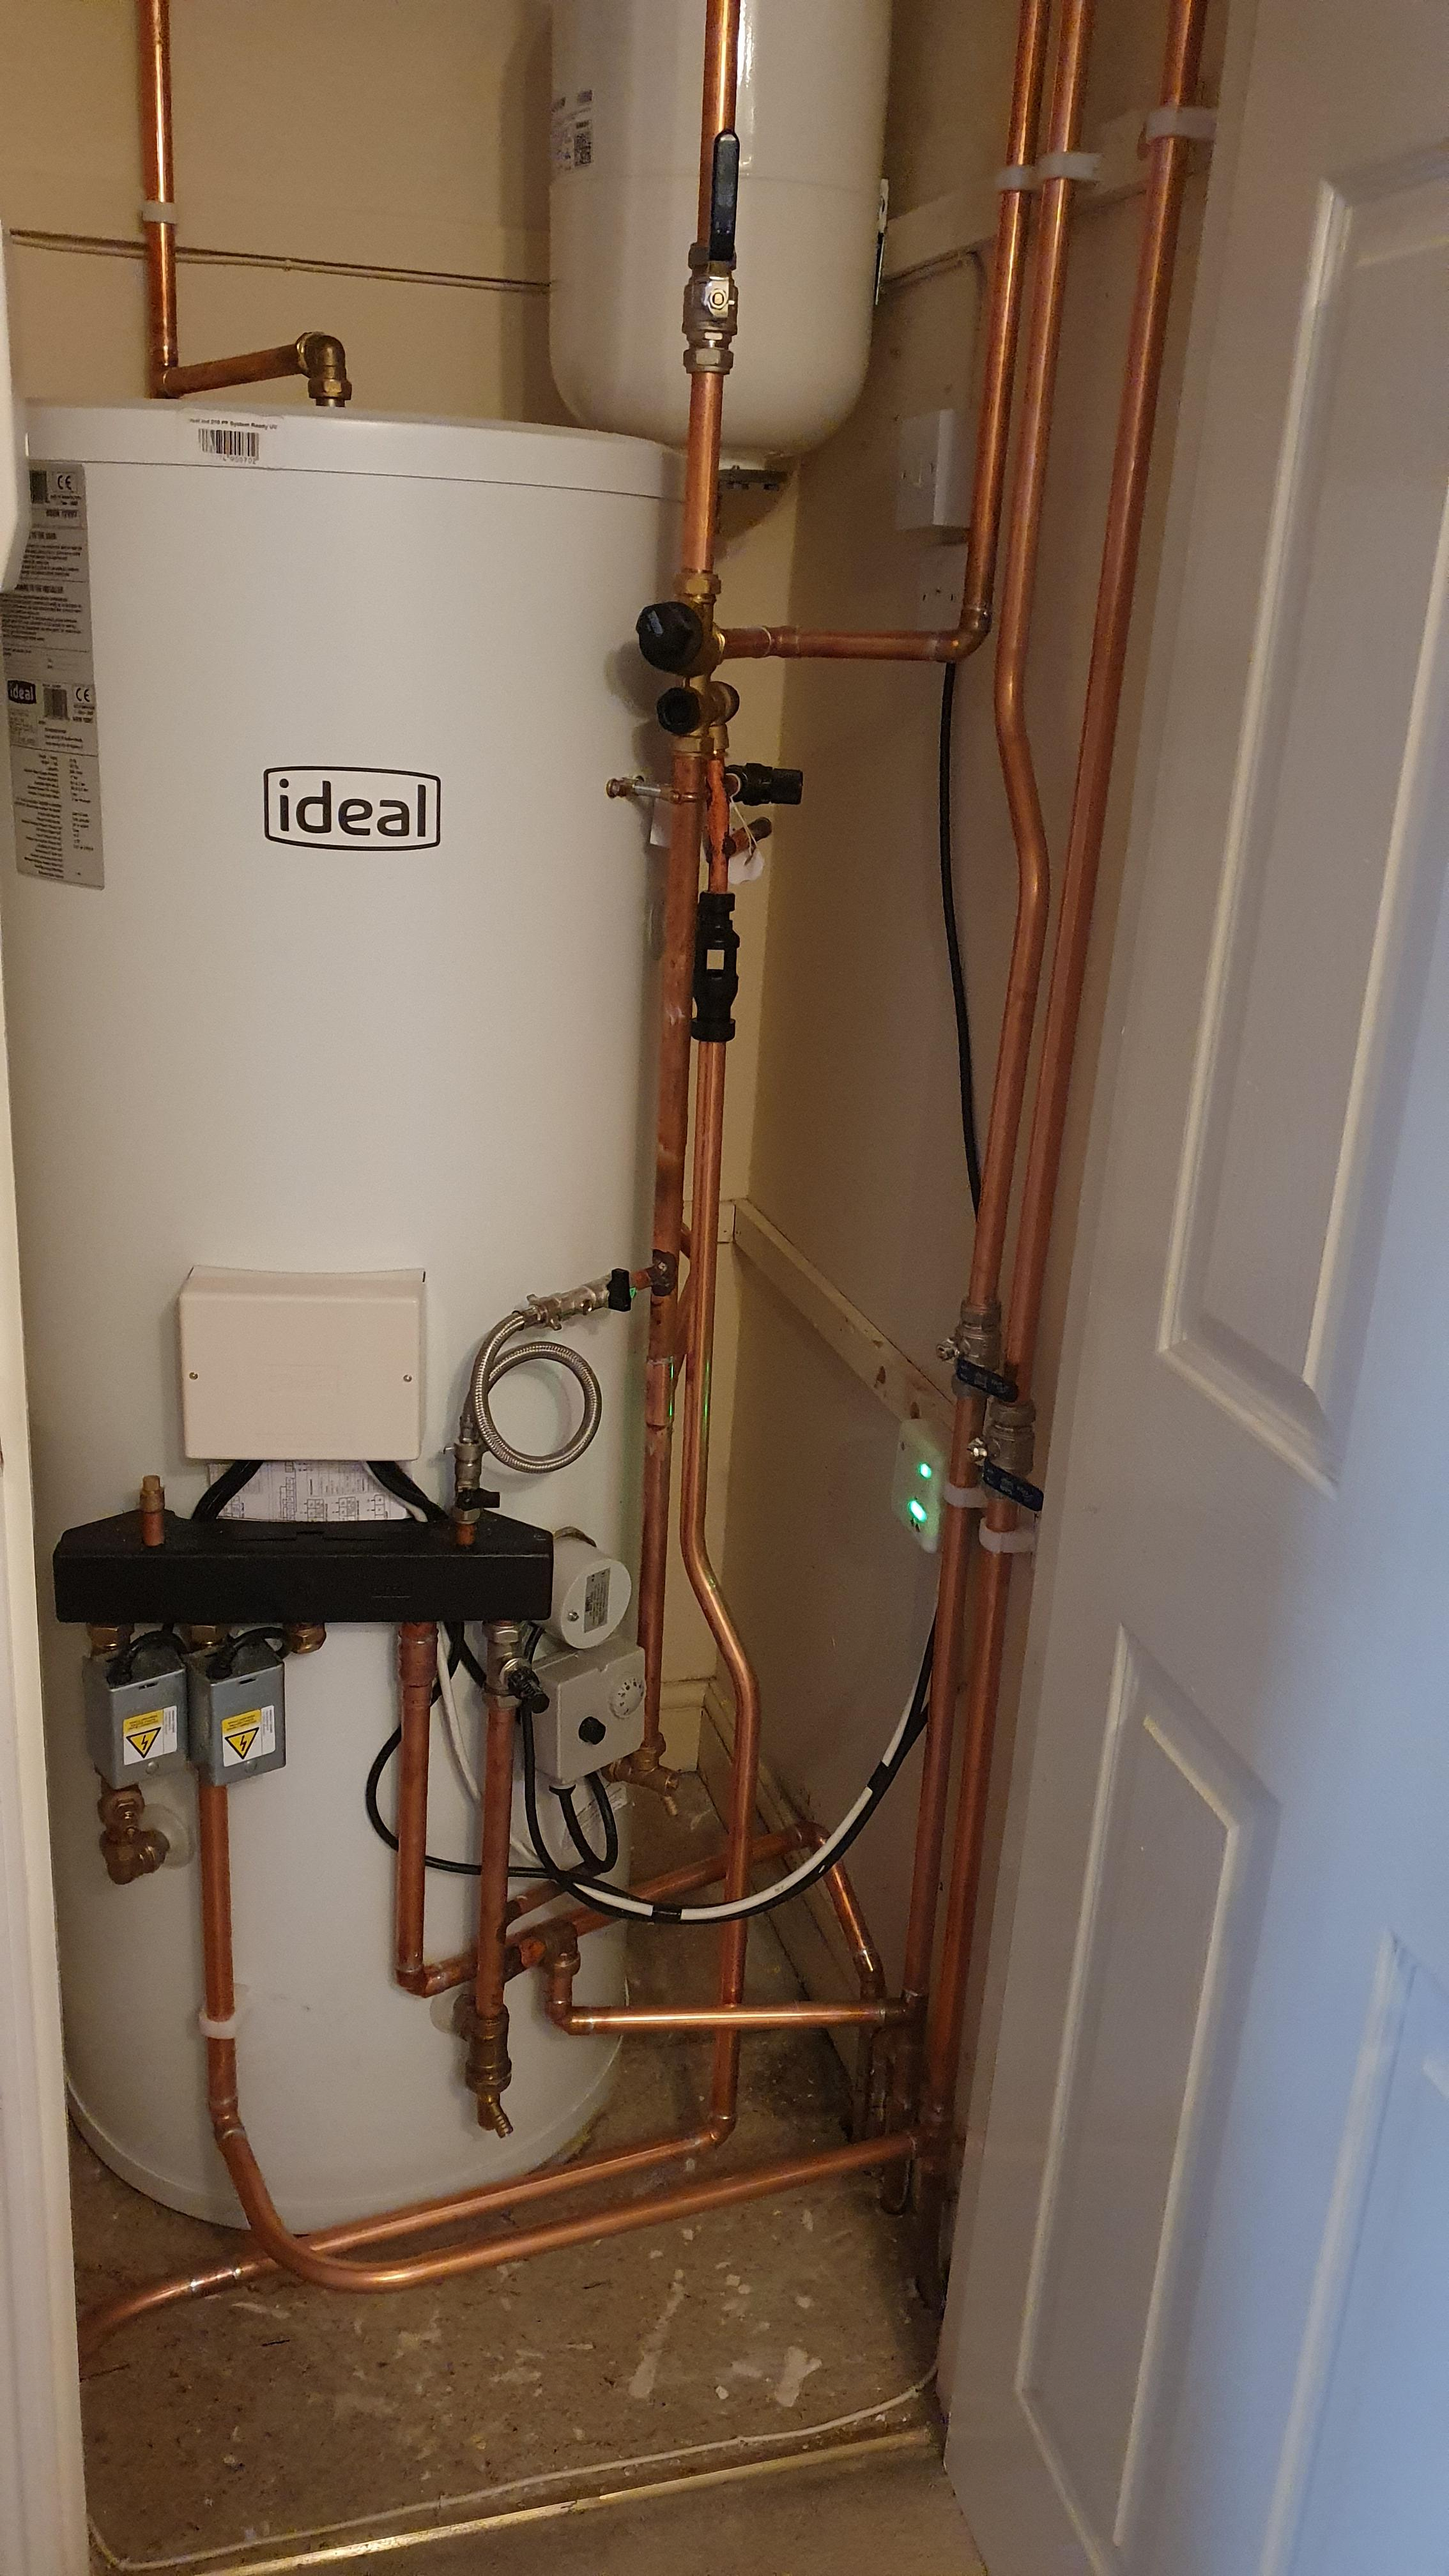 Unvented cylinder installation in Kings Hill, West Malling.